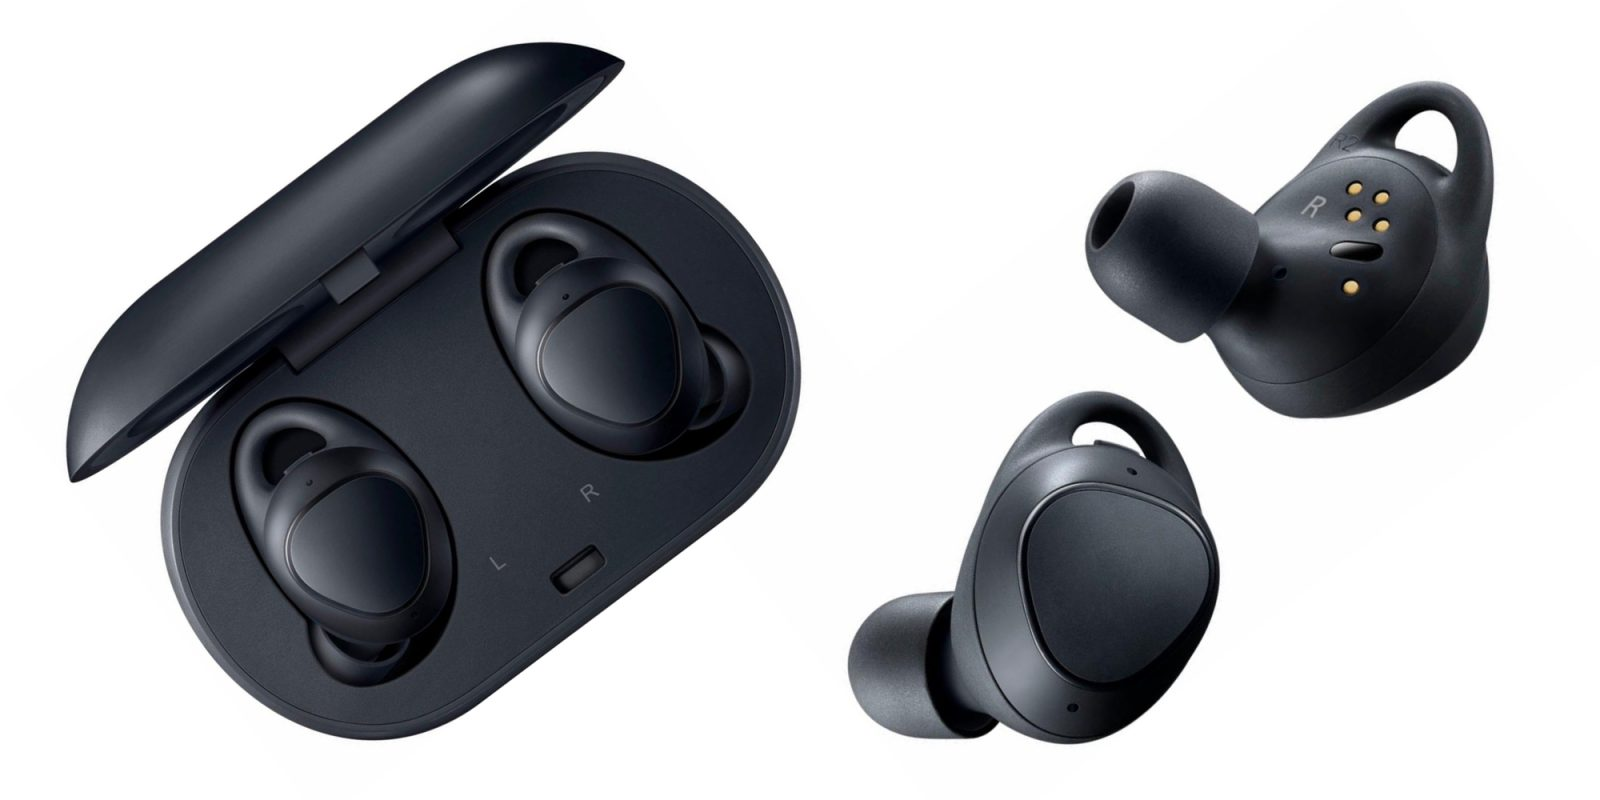 Pair Samsung S Gear Iconx Bluetooth Earbuds W Your Galaxy S9 For 135 Reg 175 9to5toys